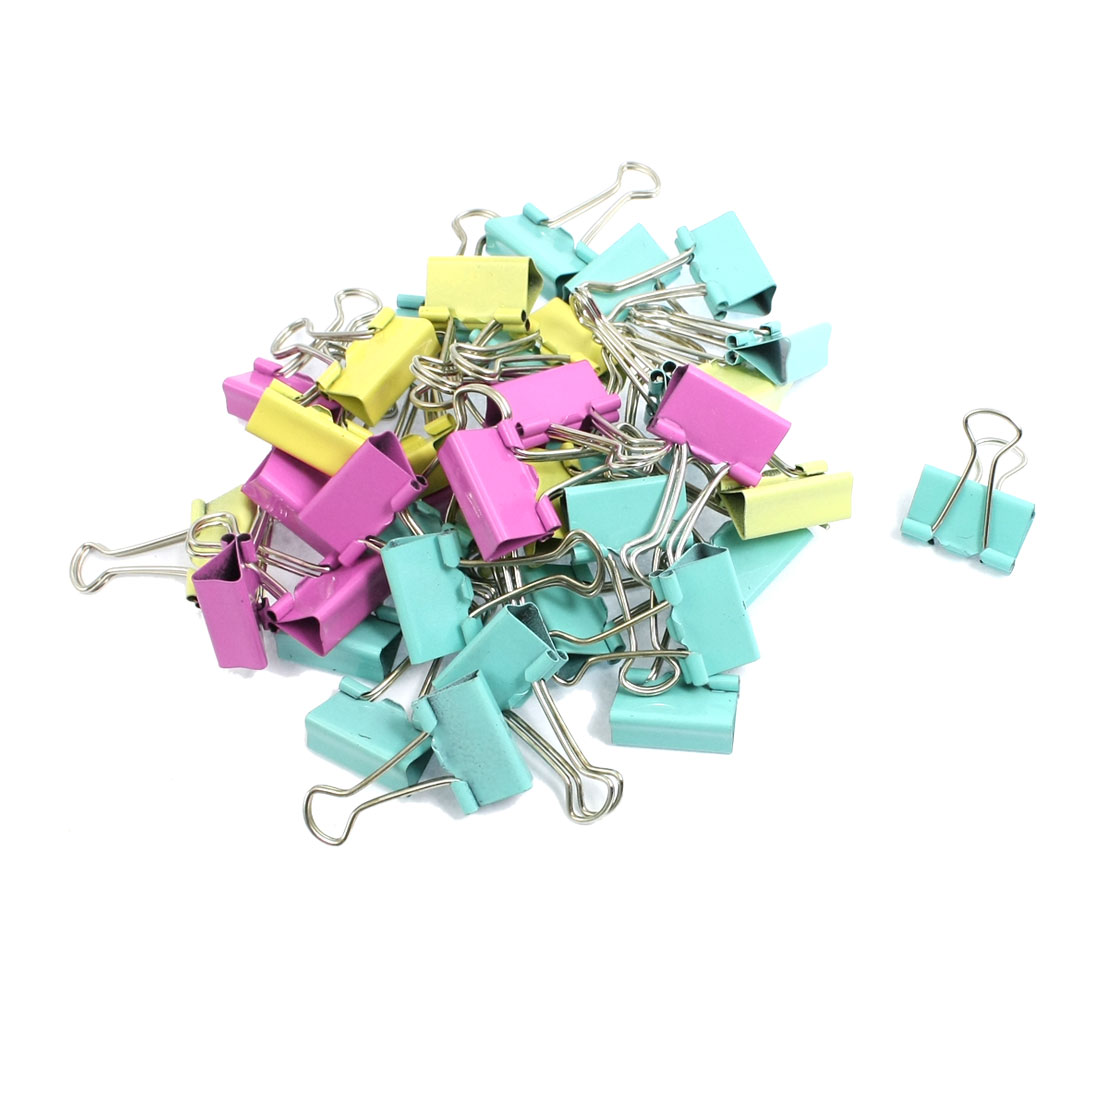 Office School 19mm Width Assorted Color Metal Binder Clips 40 Pcs